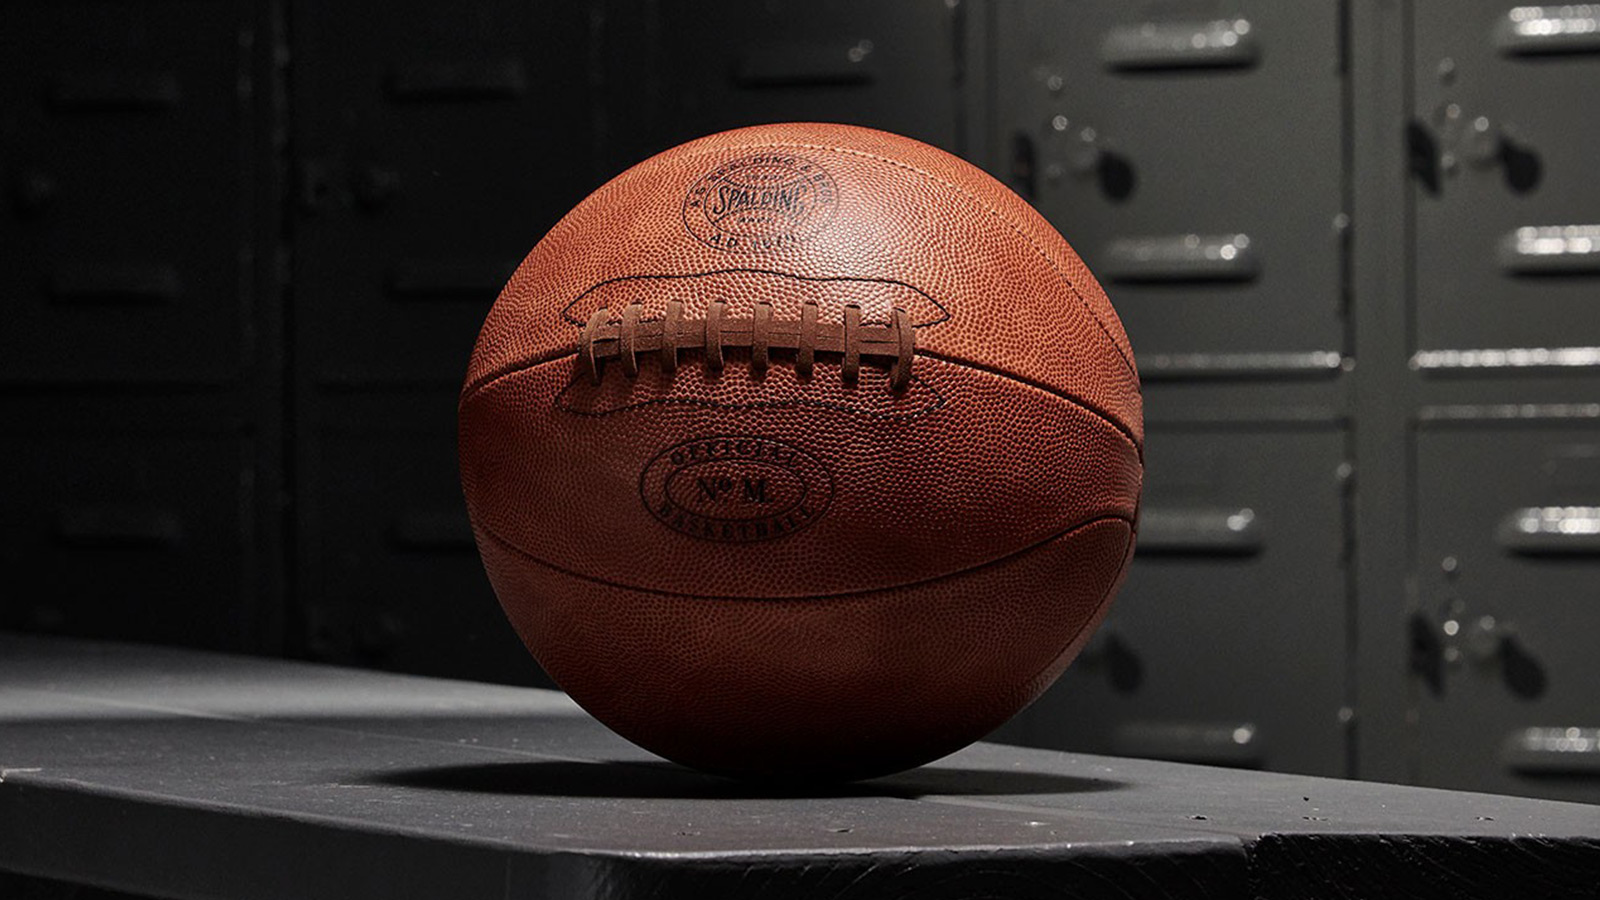 Spalding 125th Anniversary 1894 Official Basket Ball